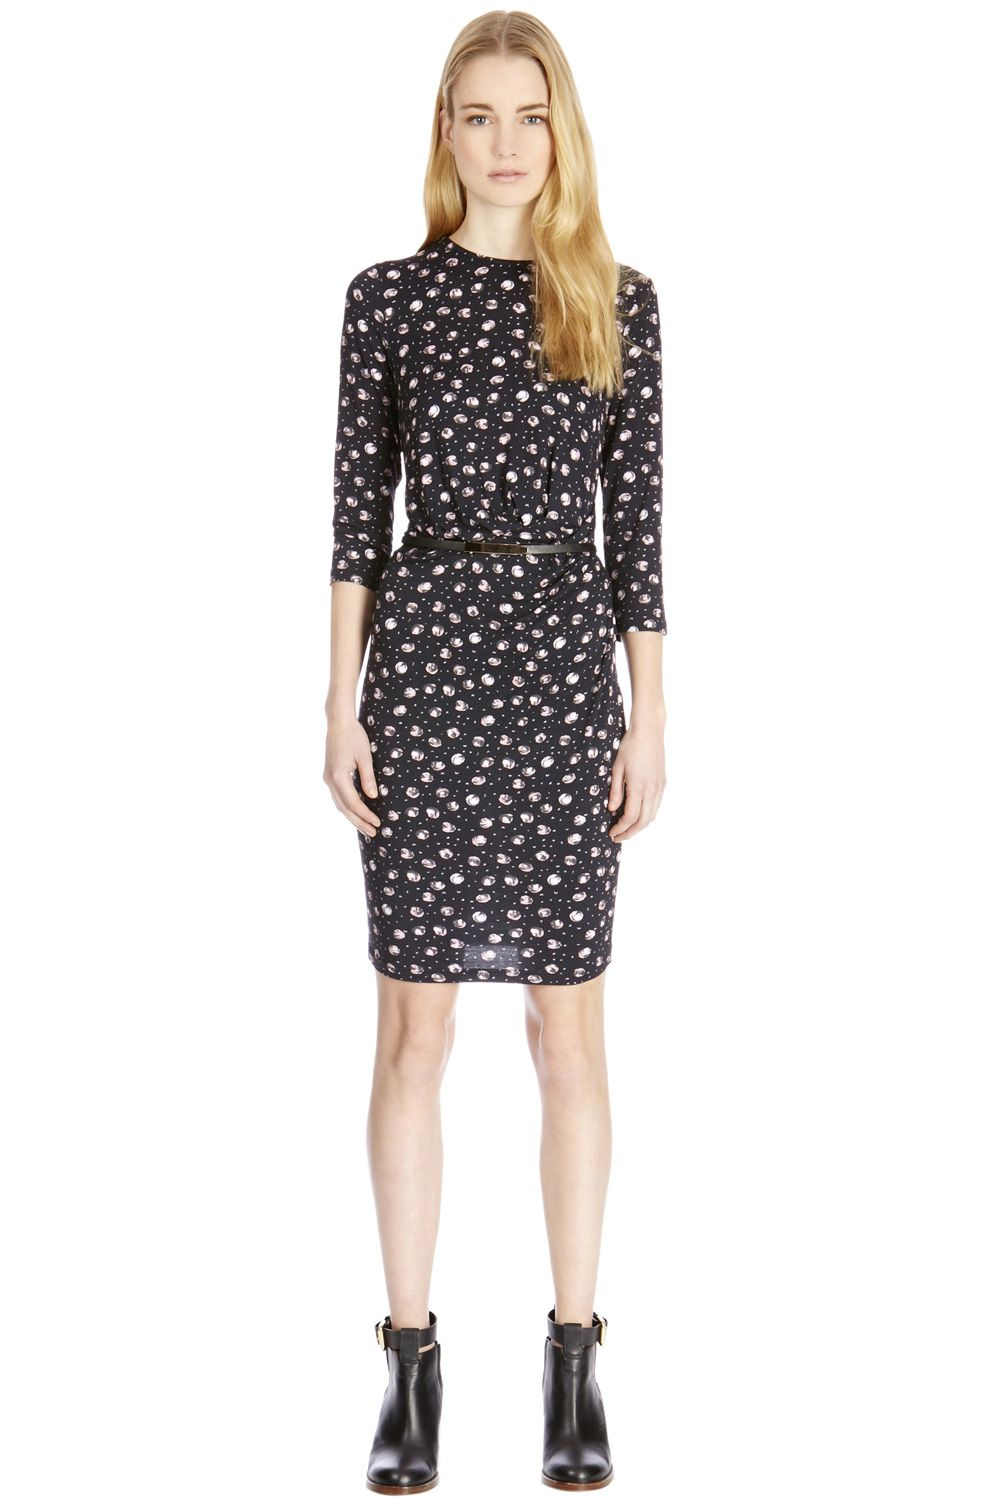 Belted rose spot print dress